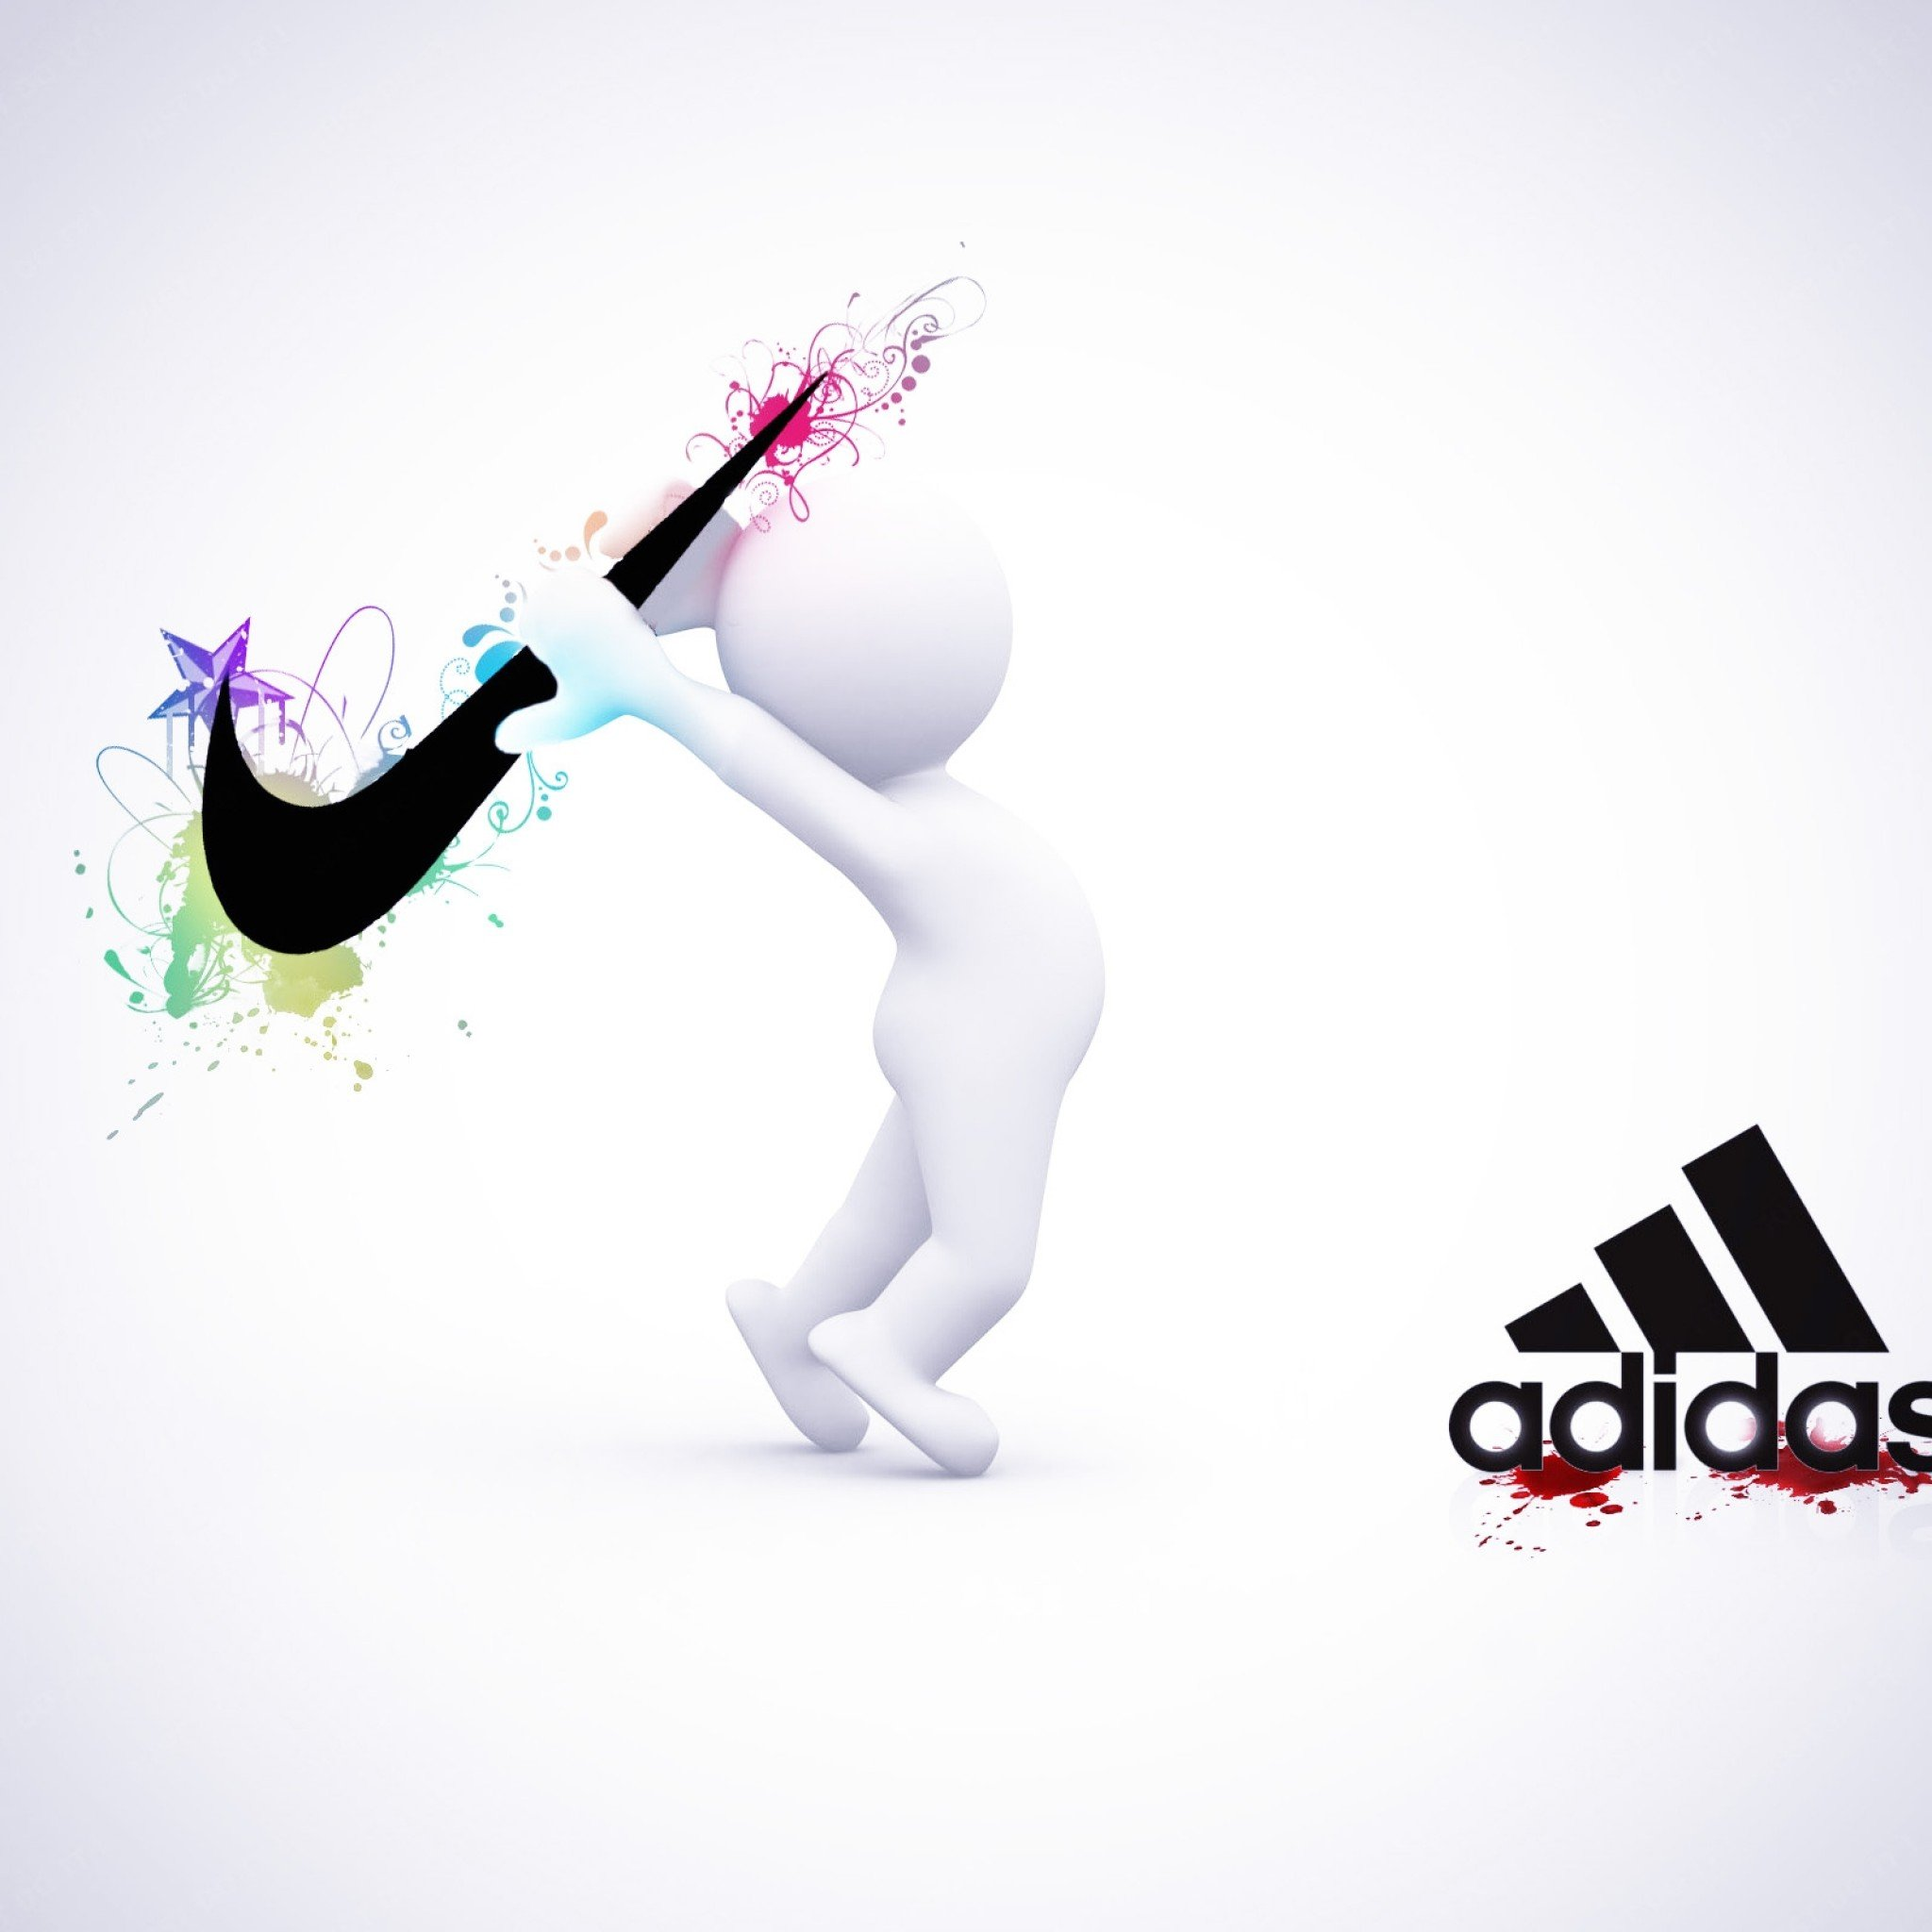 Cool Nike Wallpapers For Ipads iPad Wallpaper Gallery 2048x2048